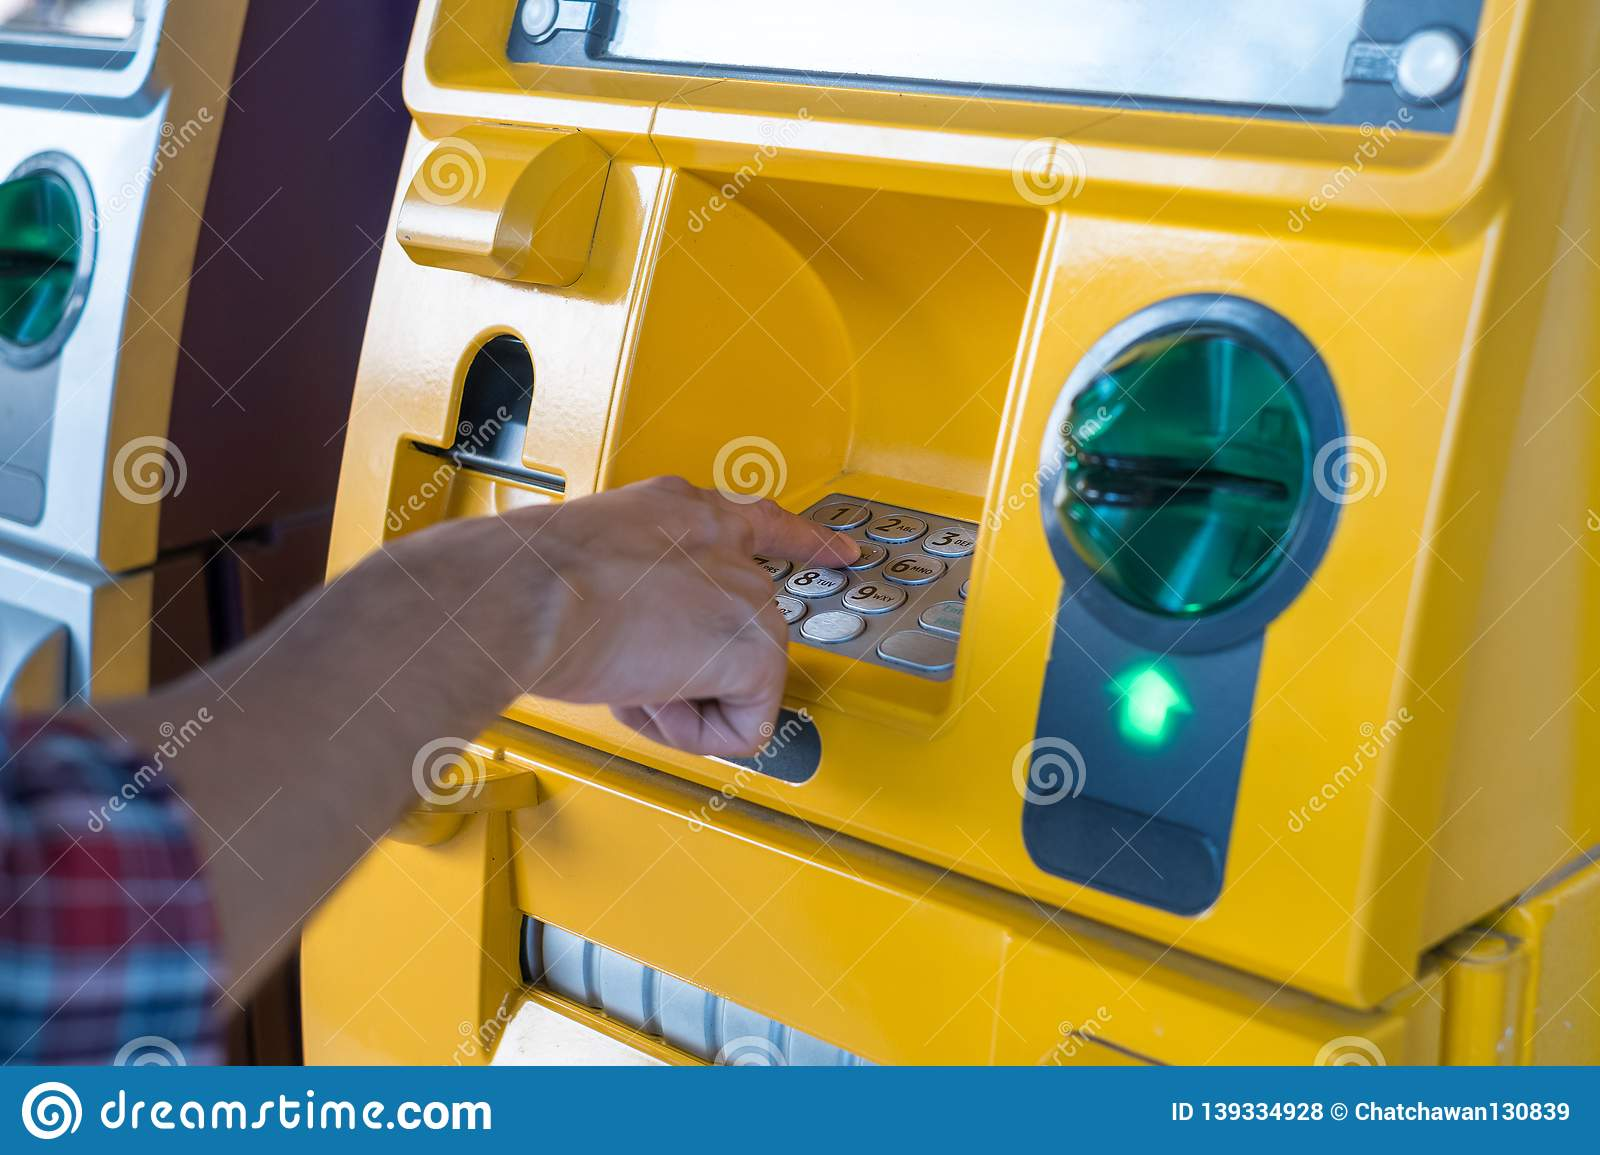 Hand pressing the code from the ATM focuses on the numbers and the finger area